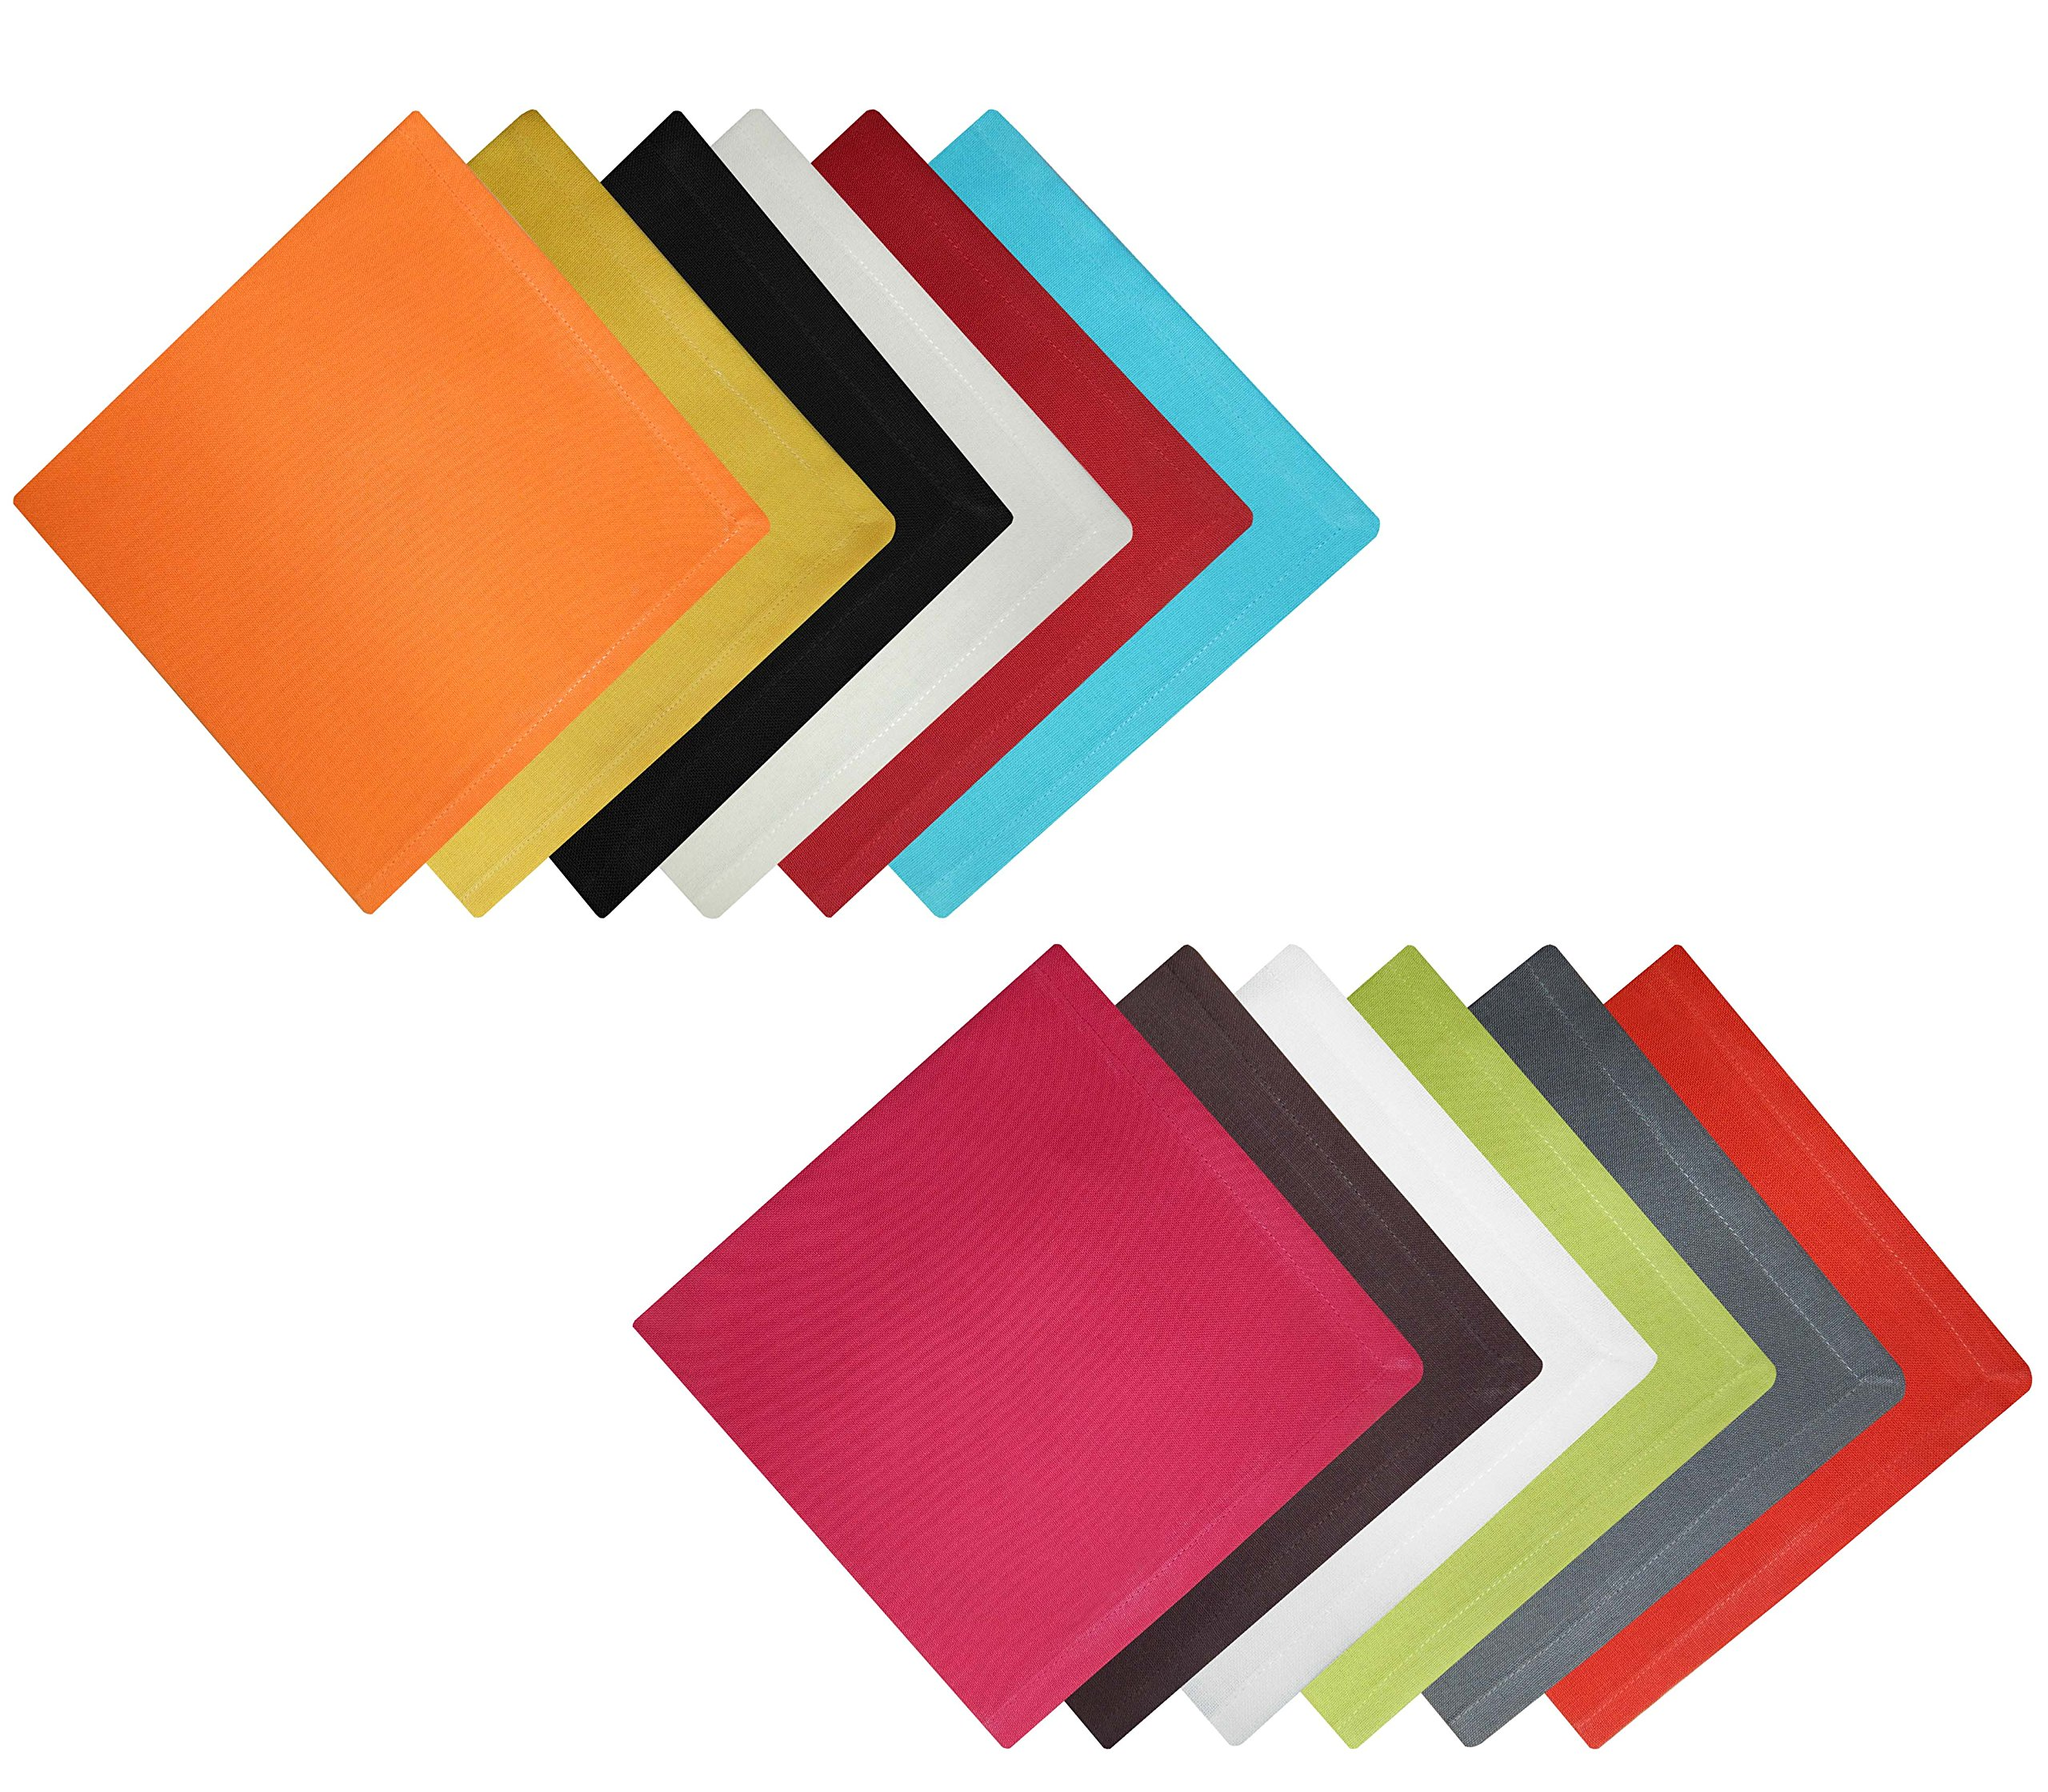 Tiny Break Cloth Napkins 17 x 17 inch -100% Cotton - Soft Comfortable - Ideal Events Regular Home Use - Multicolor -12 Pack